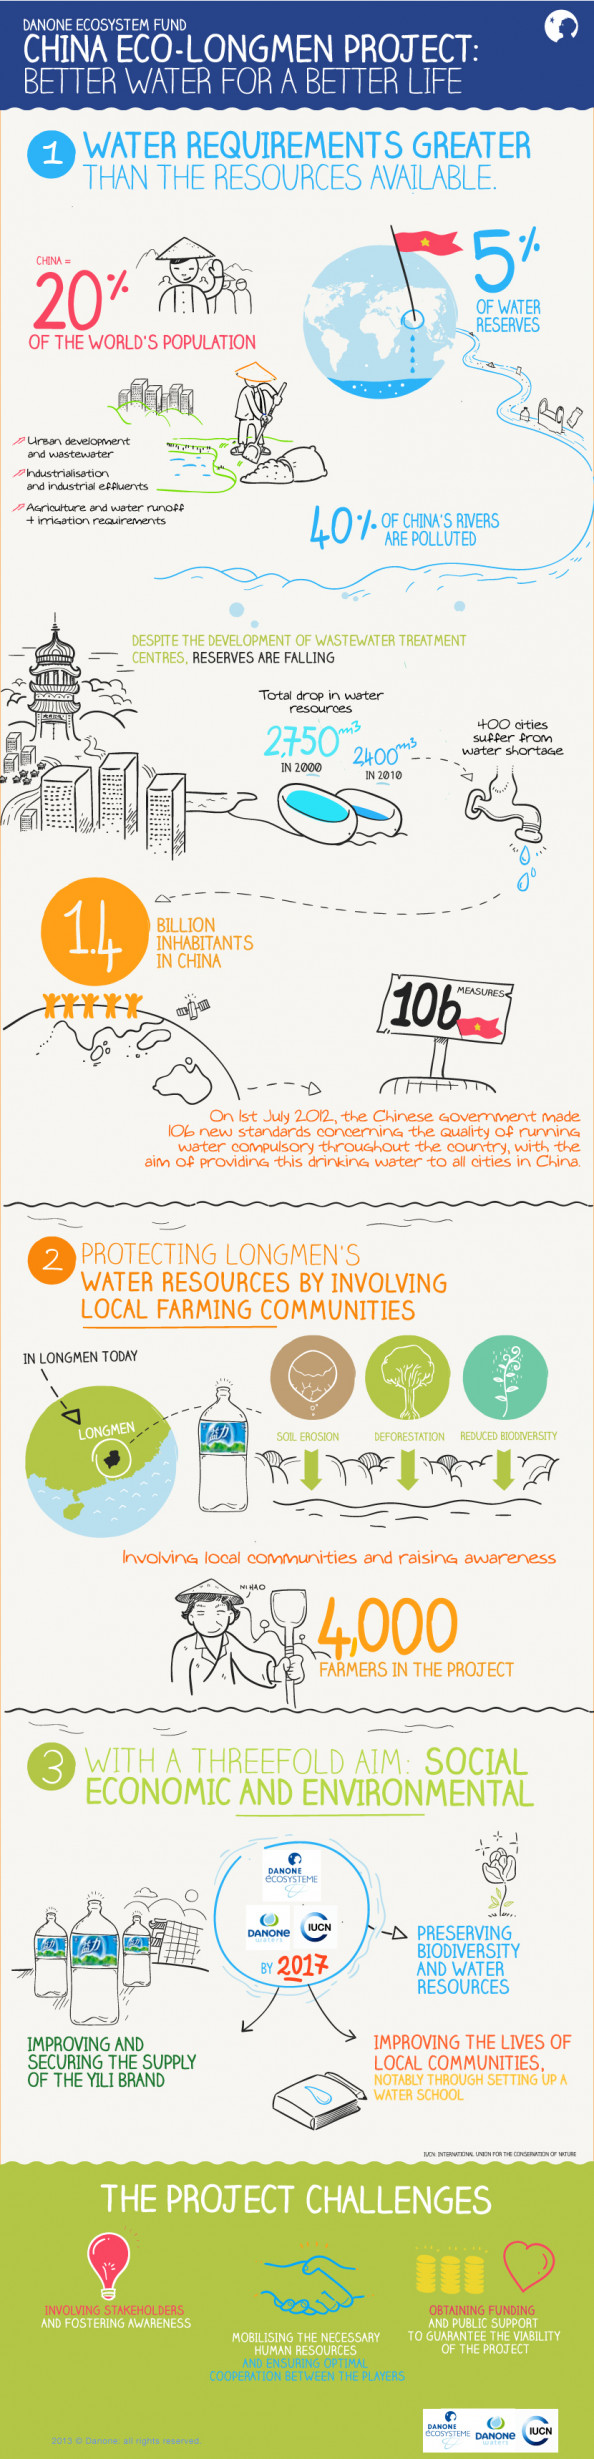 China eco-longmen project: better water for a better life. Infographic